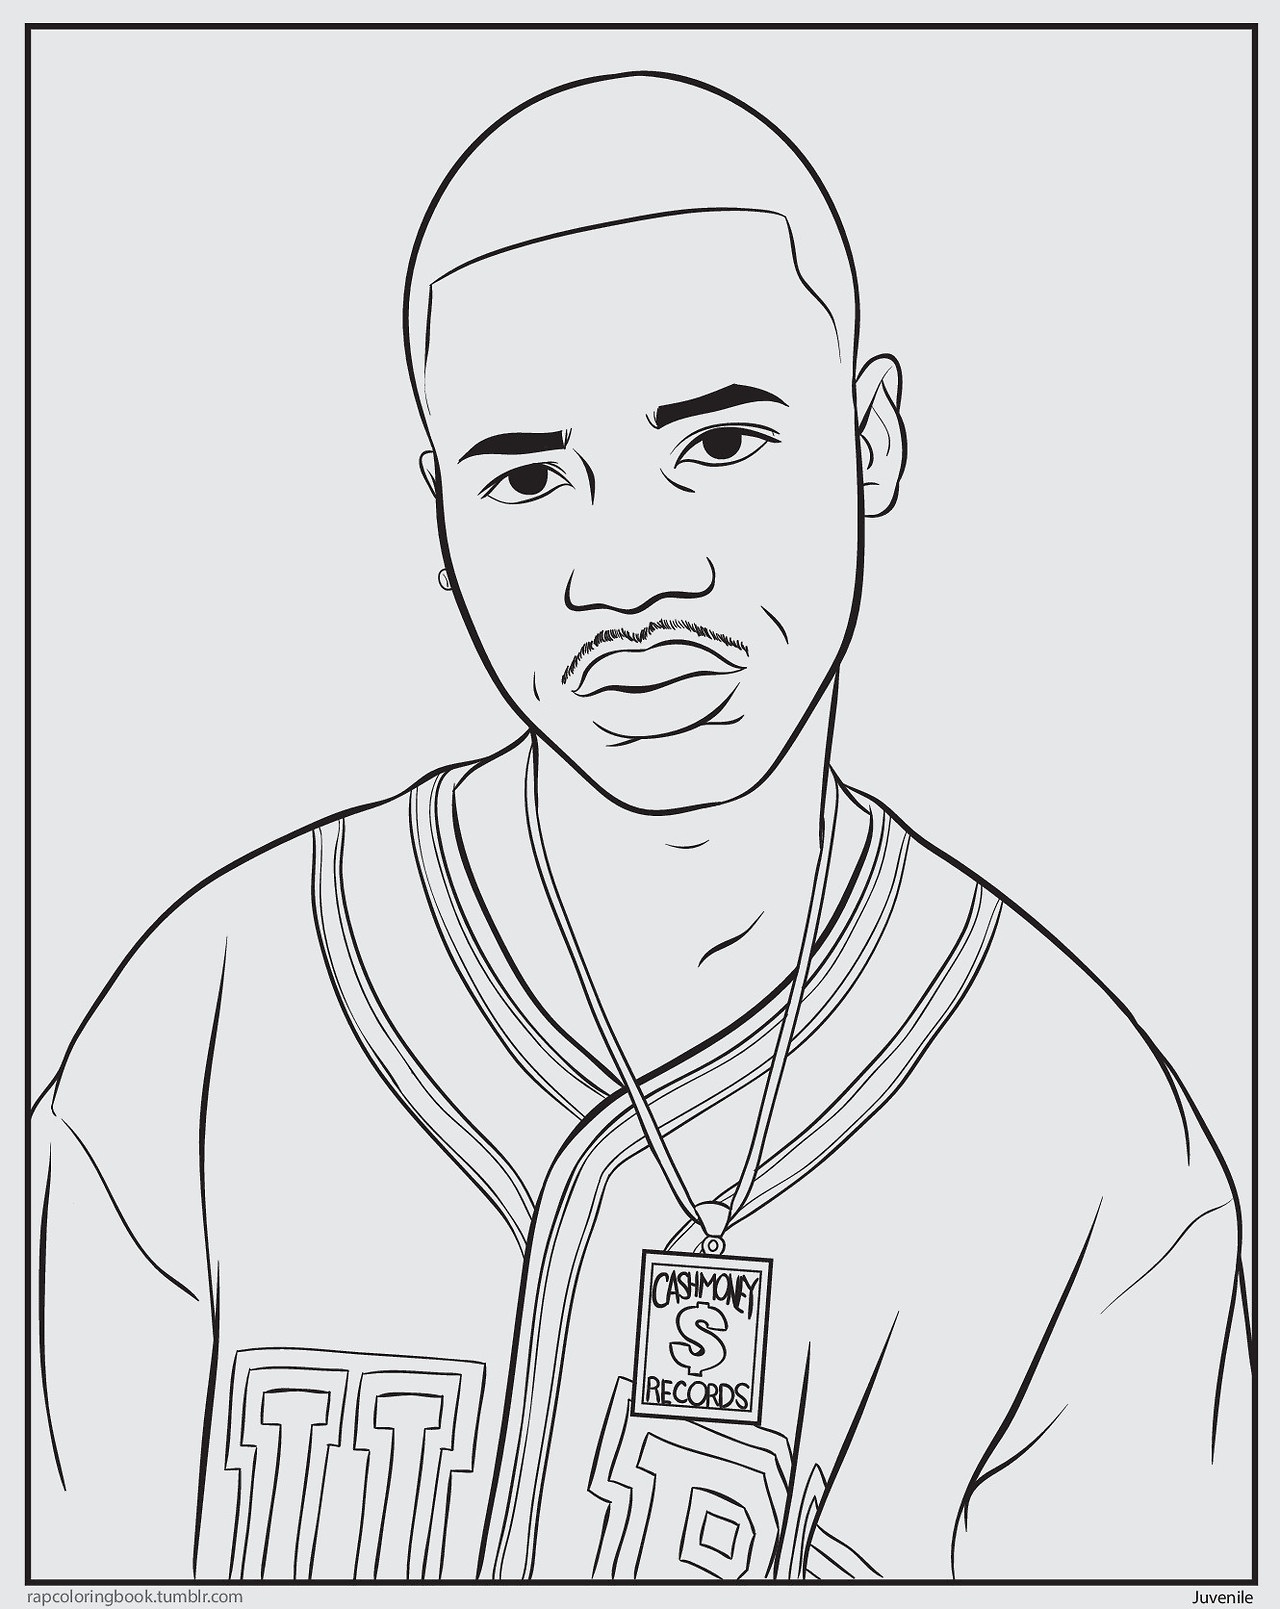 Review bun b 39 s rap coloring book friedmylittlebrain for Rapper coloring pages